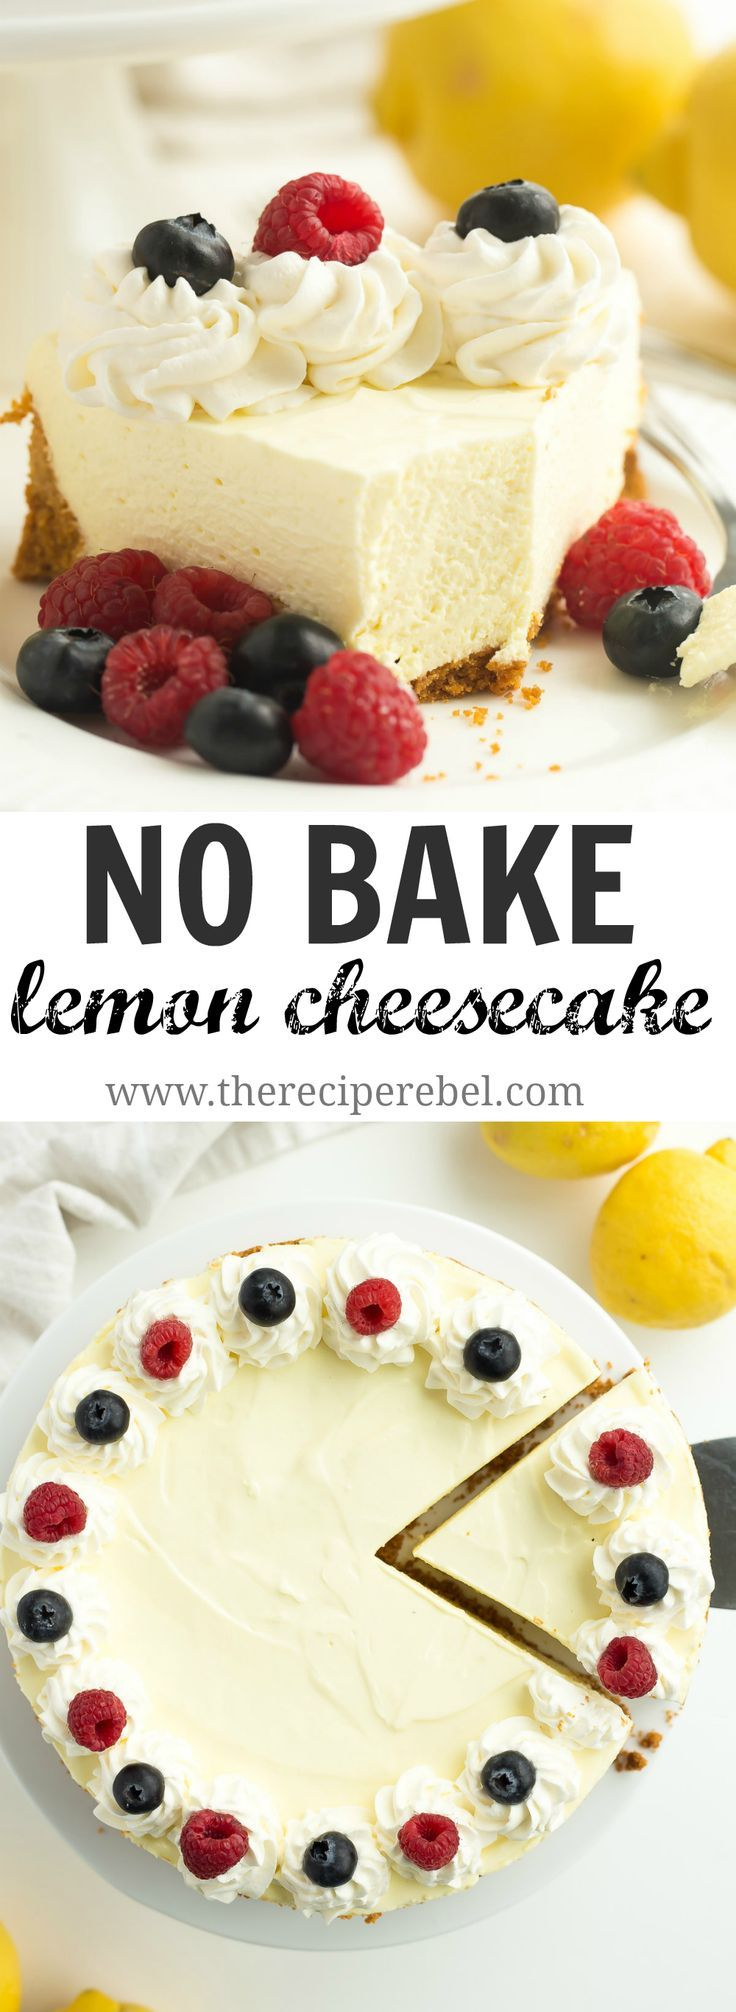 A smooth, extra creamy No Bake Lemon Cheesecake made with lemon juice and lemon zest and no artificial flavors! It's firm enough to stand up to being cut and is even great frozen! www.thereciperebe...